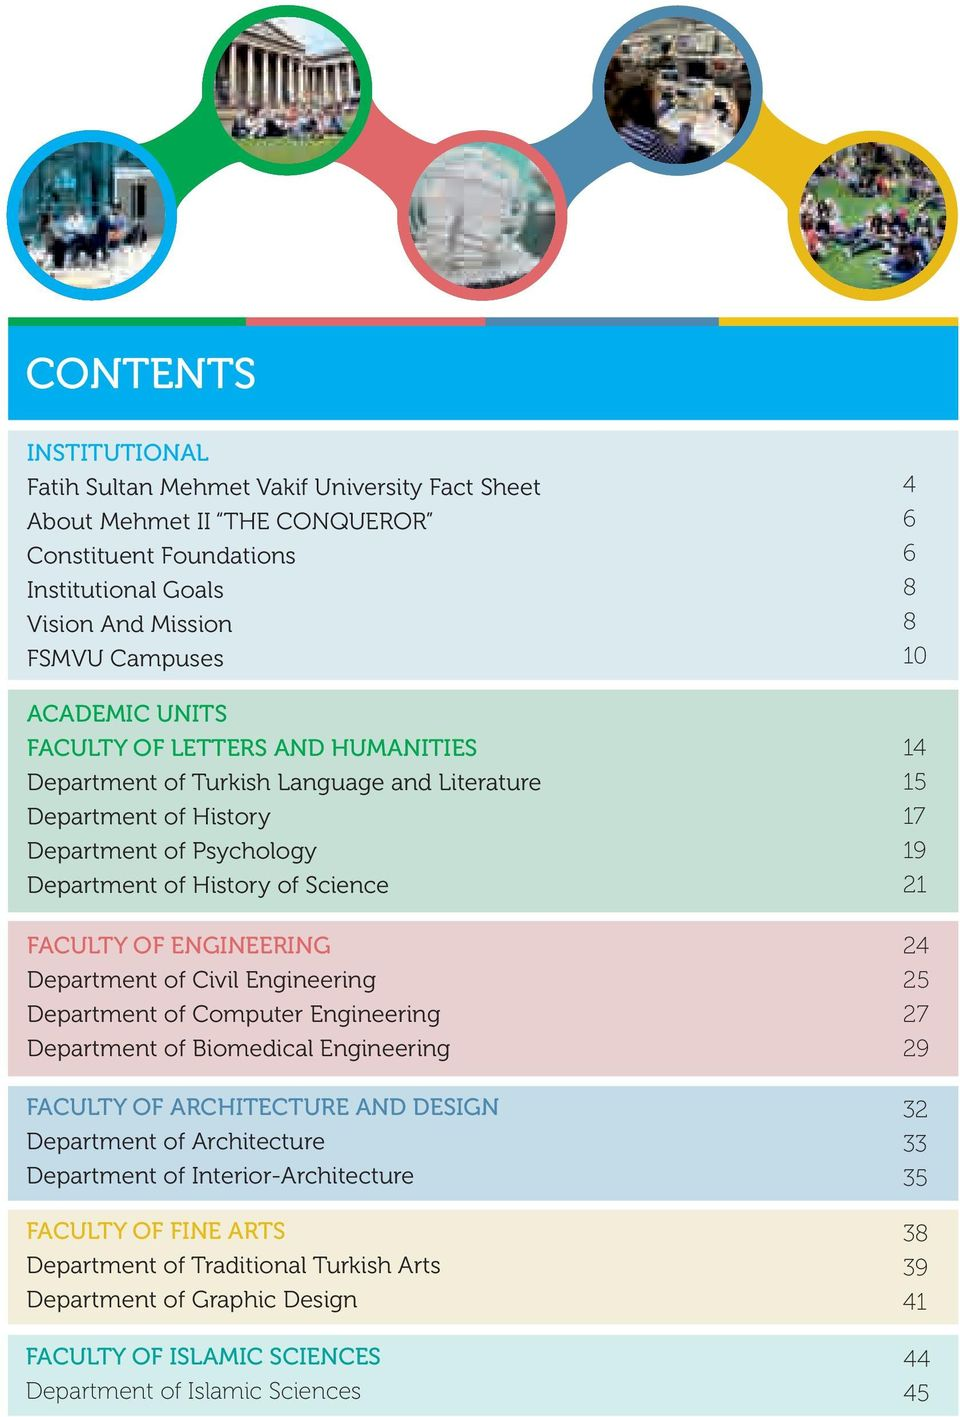 Civil Engineering Department of Computer Engineering Department of Biomedical Engineering FACULTY OF ARCHITECTURE AND DESIGN Department of Architecture Department of Interior-Architecture FACULTY